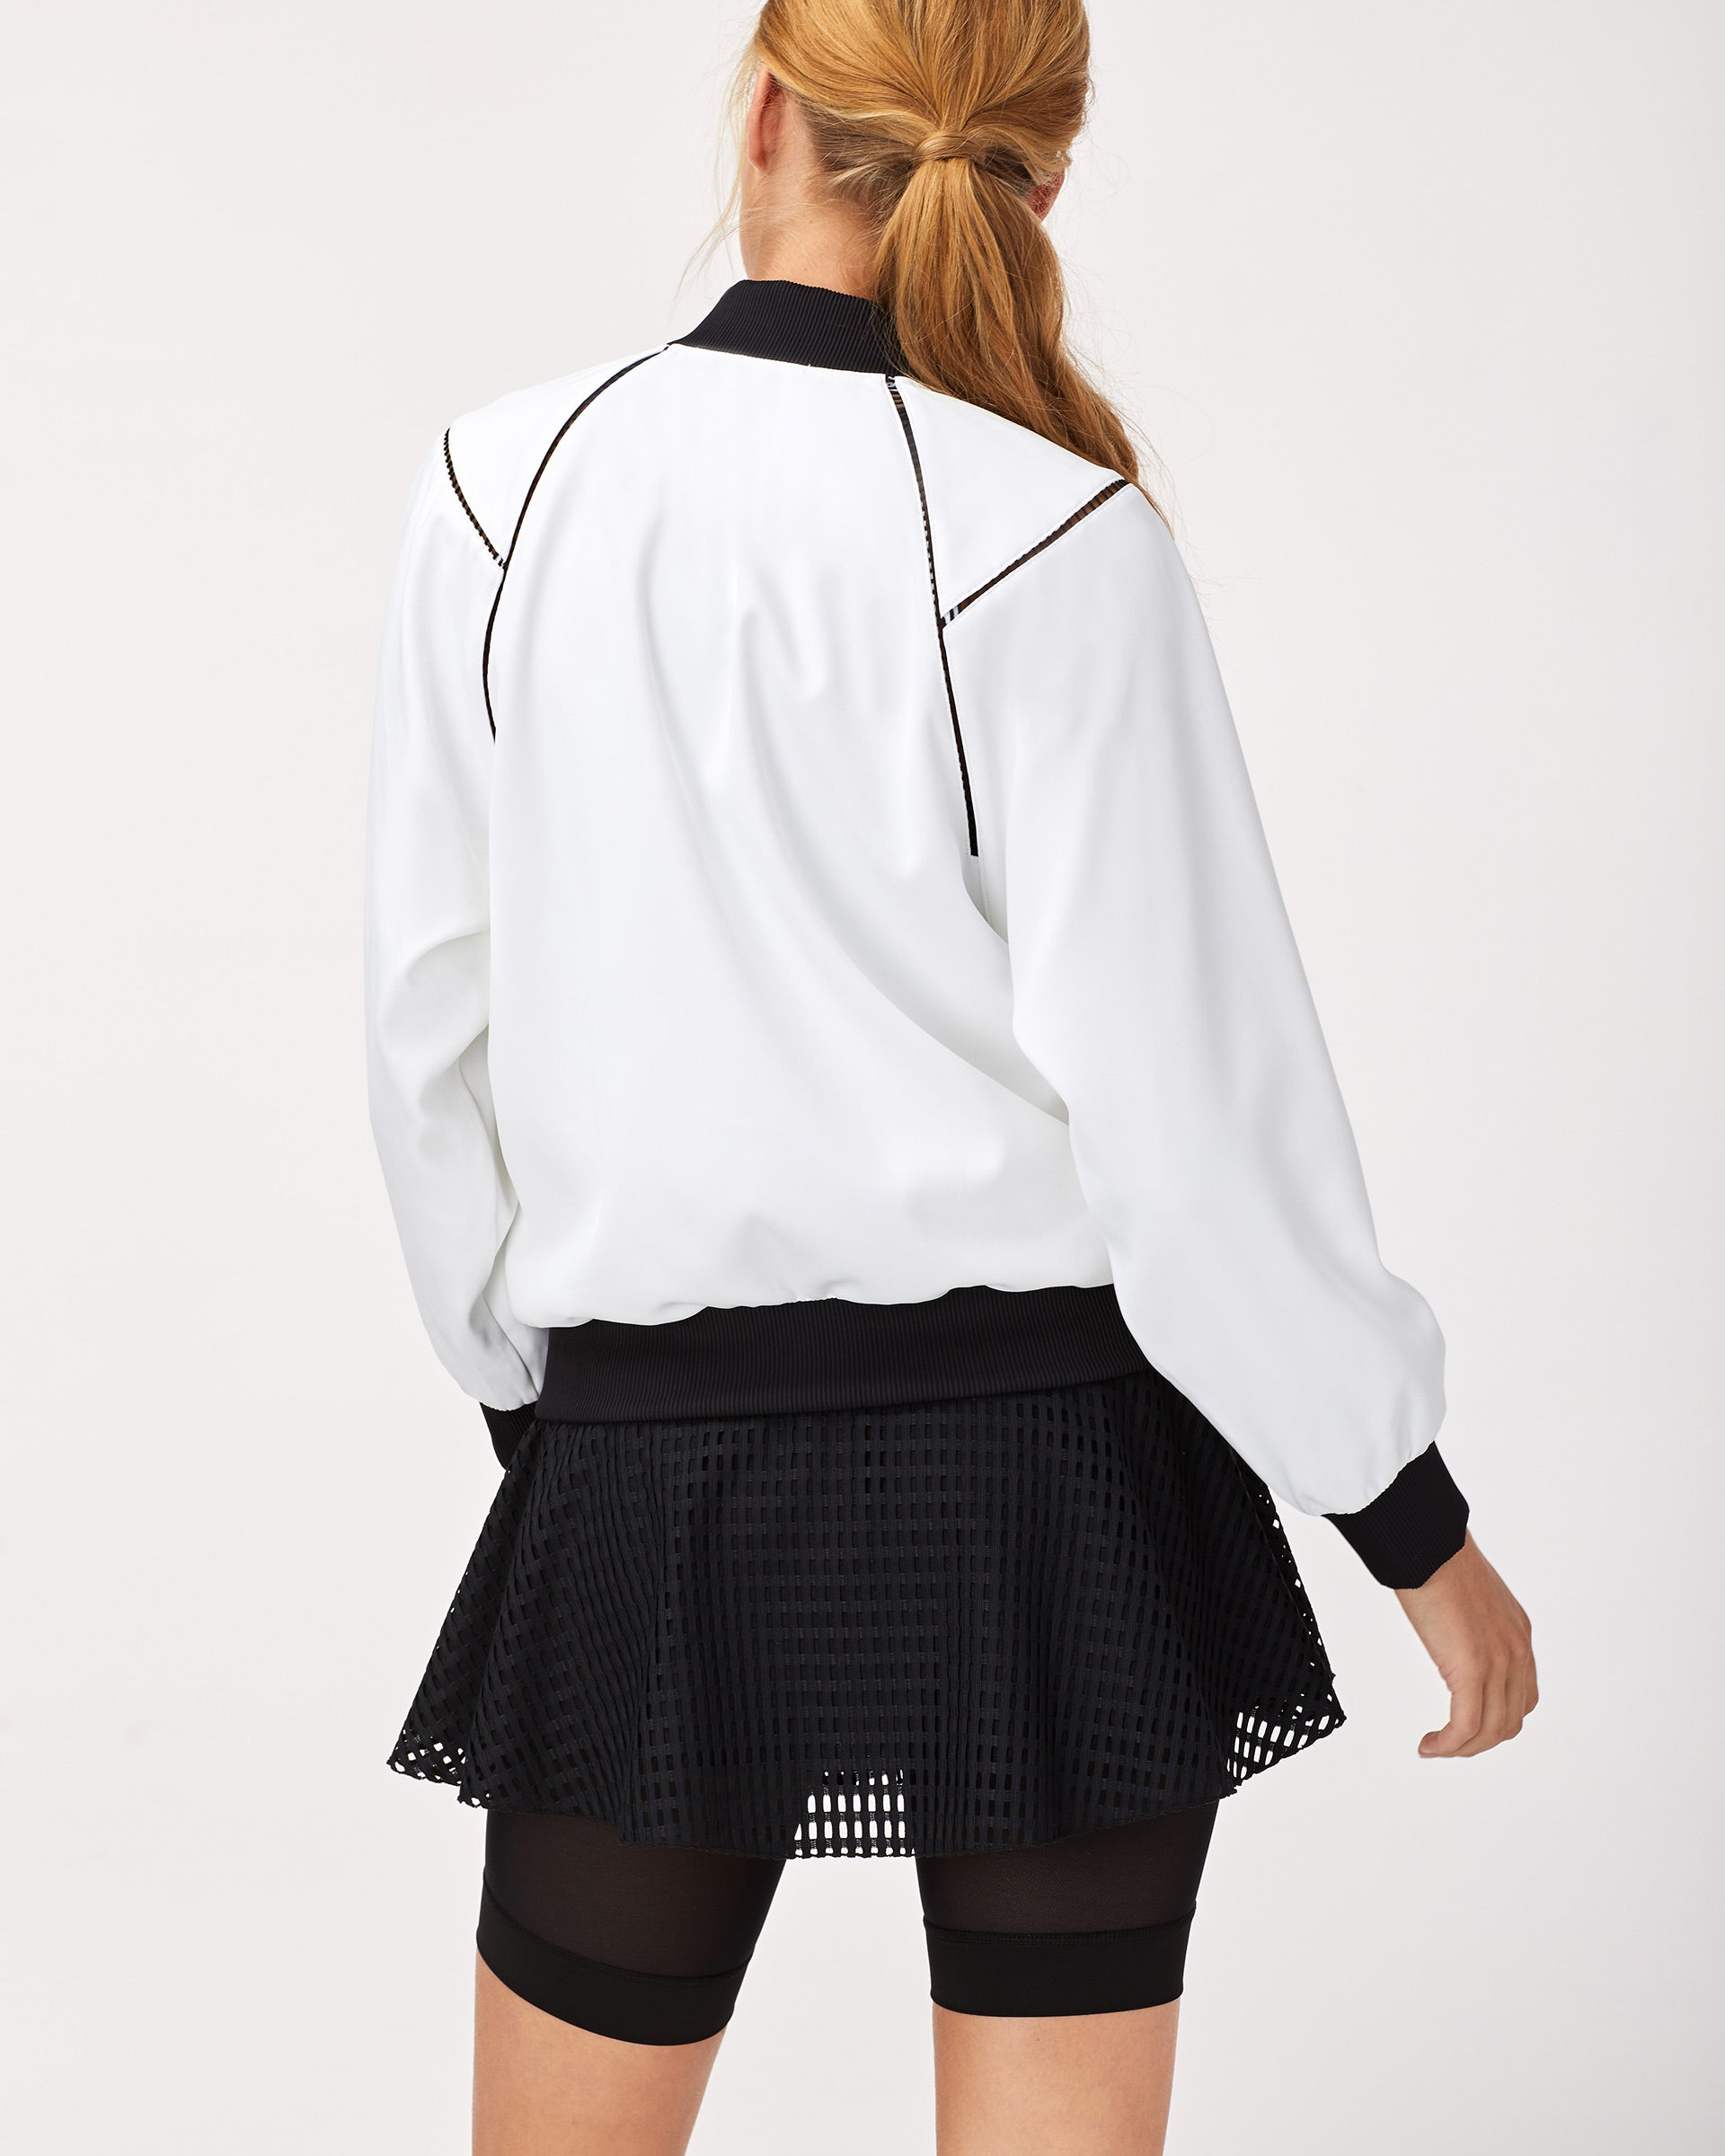 1-love-tennis-jacket-white-black